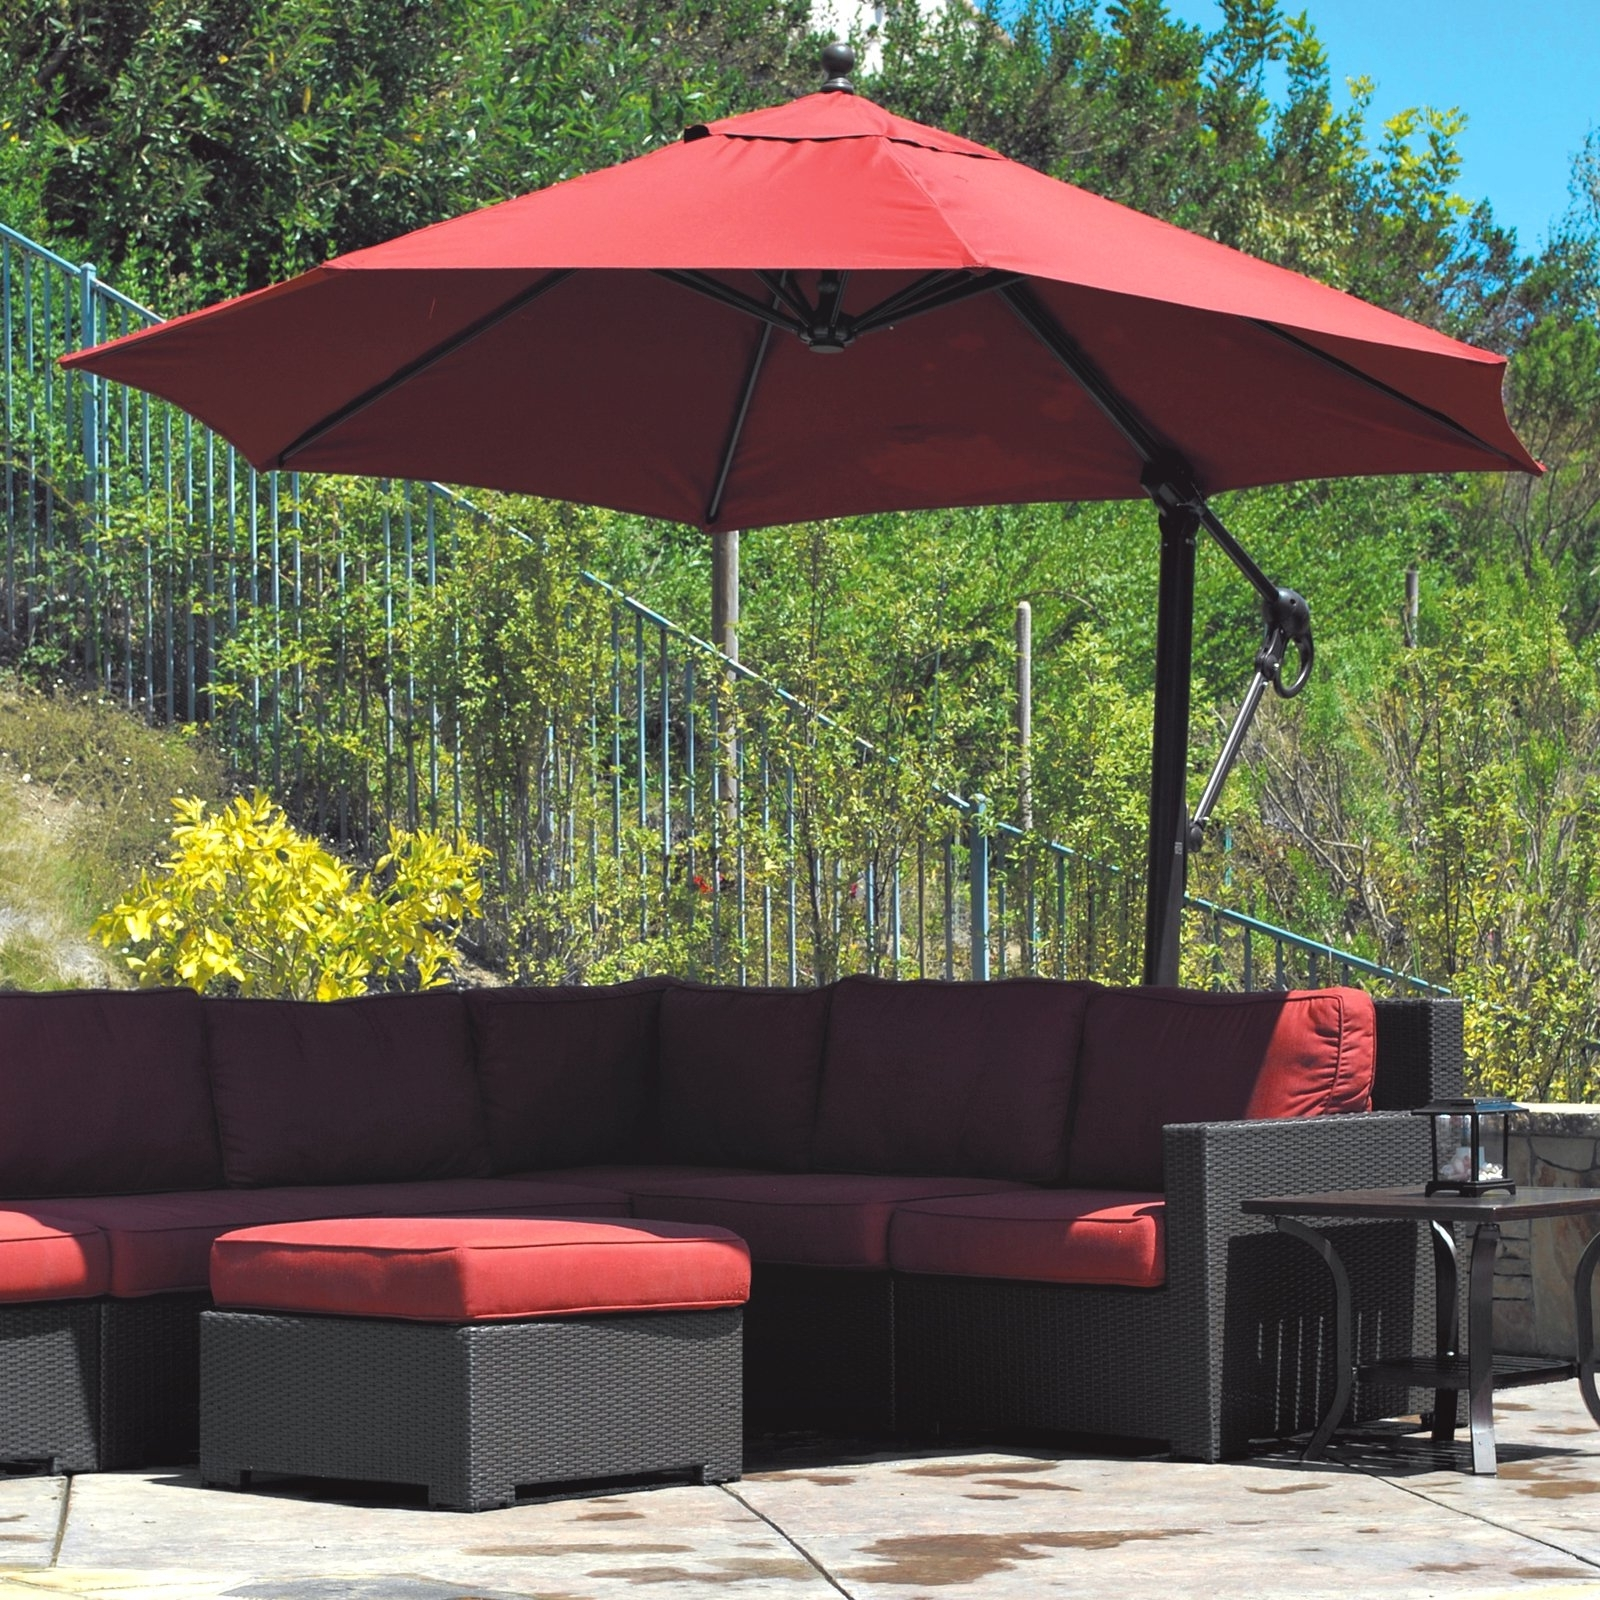 Red Patio Umbrellas Inside Well Known Offset Patio Umbrella For Shade From Sun – Decorifusta (View 12 of 20)